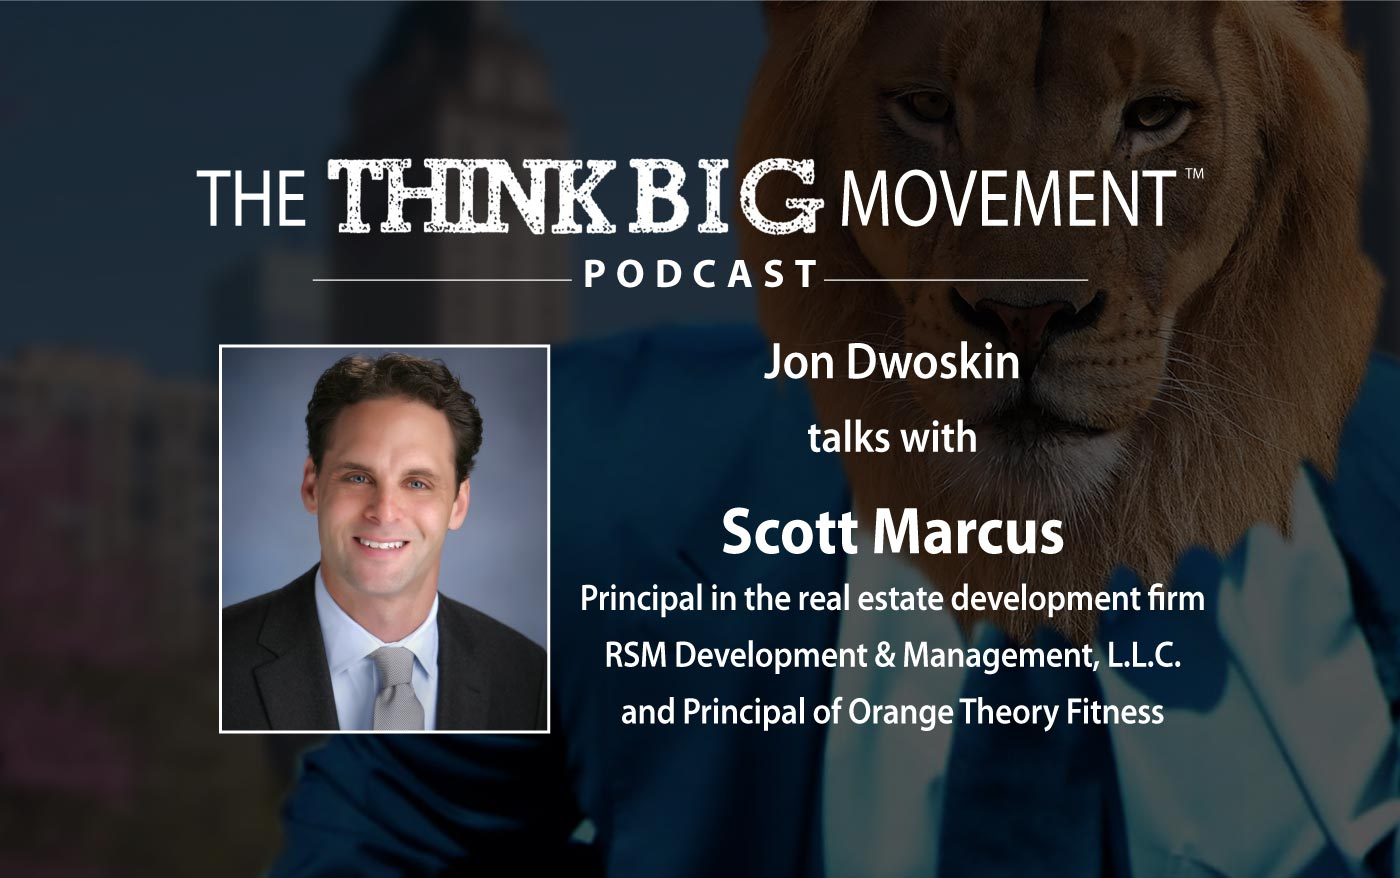 Think Big Movement Podcast - Jon Dwoskin Interviews Scott J. Marcus, Principal in RSM Development & Management and Orange Theory Fitness